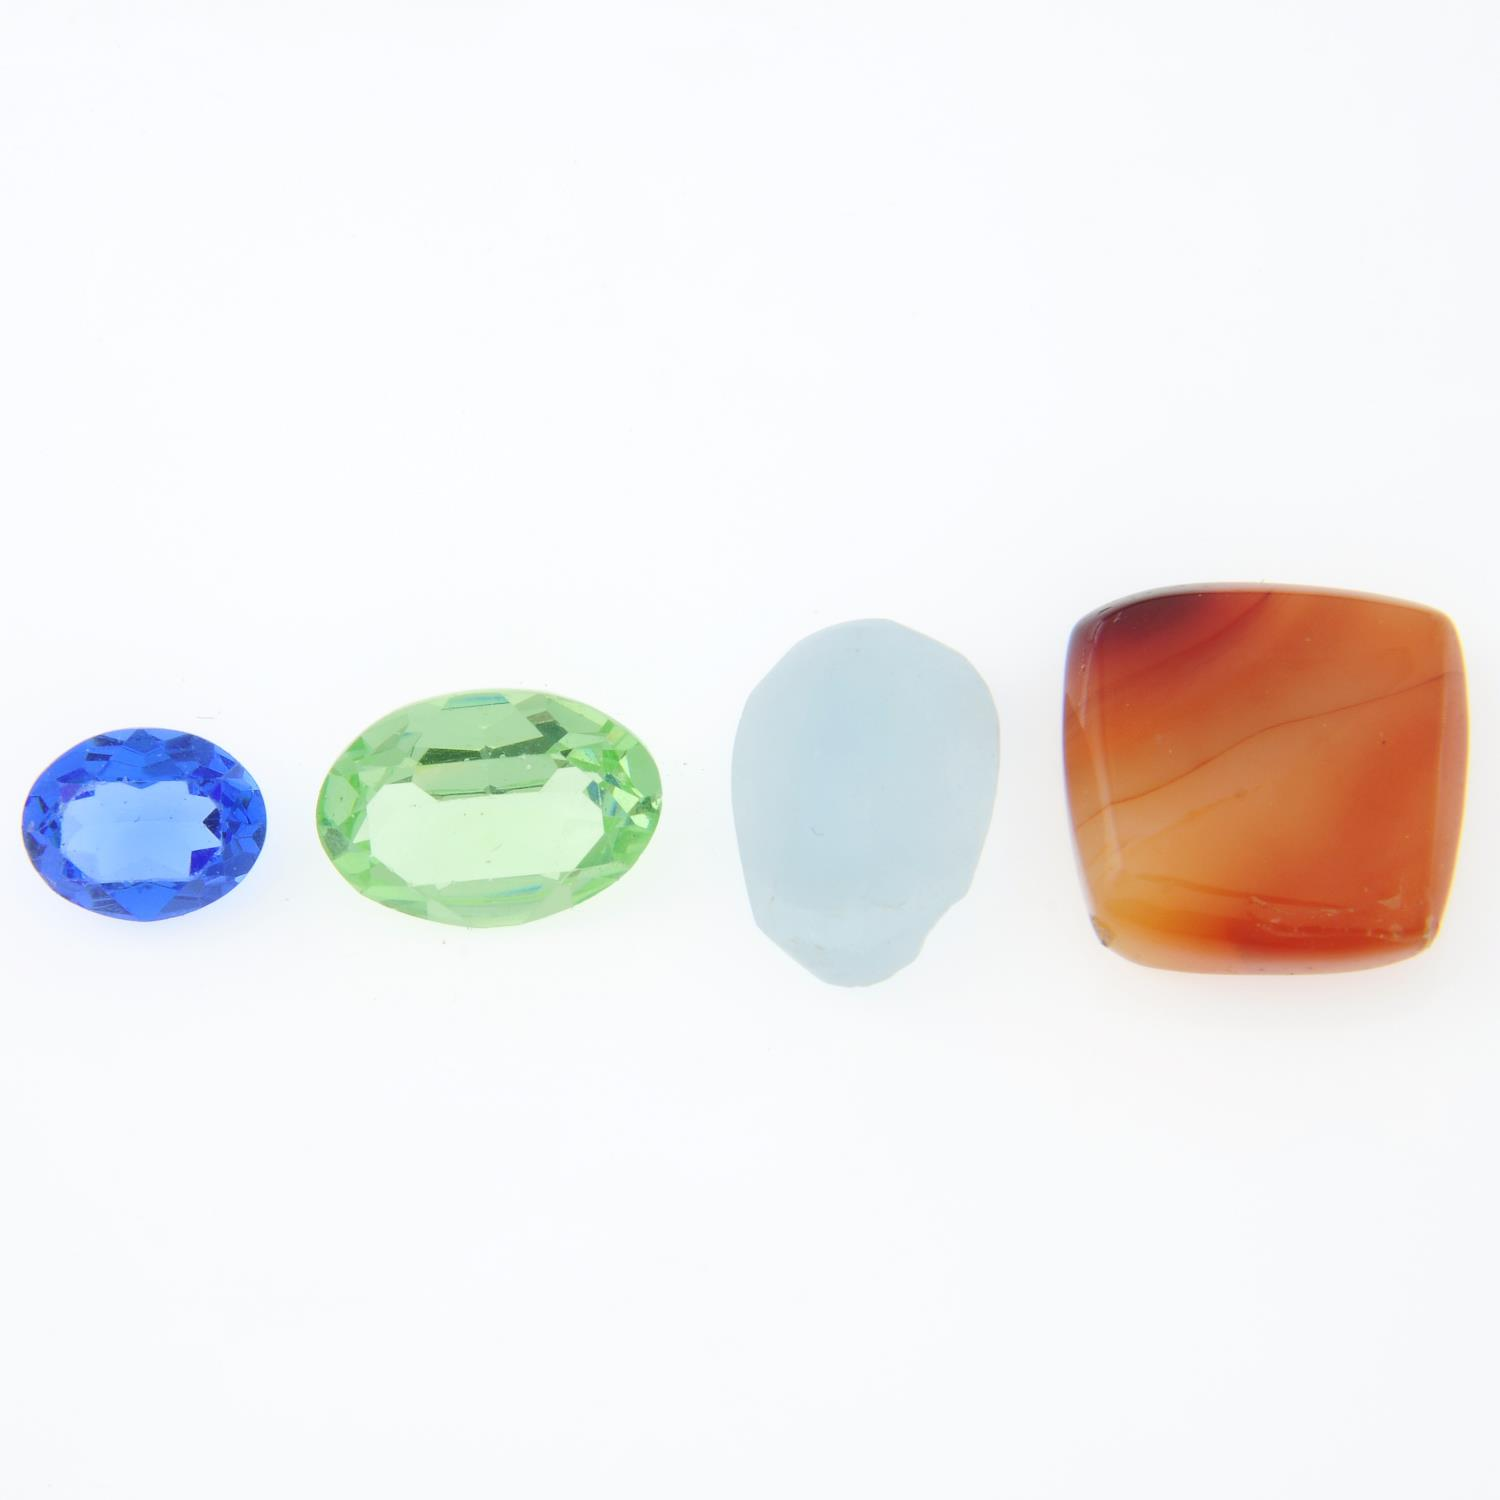 A selection of gemstones, weighing 1.1kgs, to include quartz, topaz, bloodstone and others.